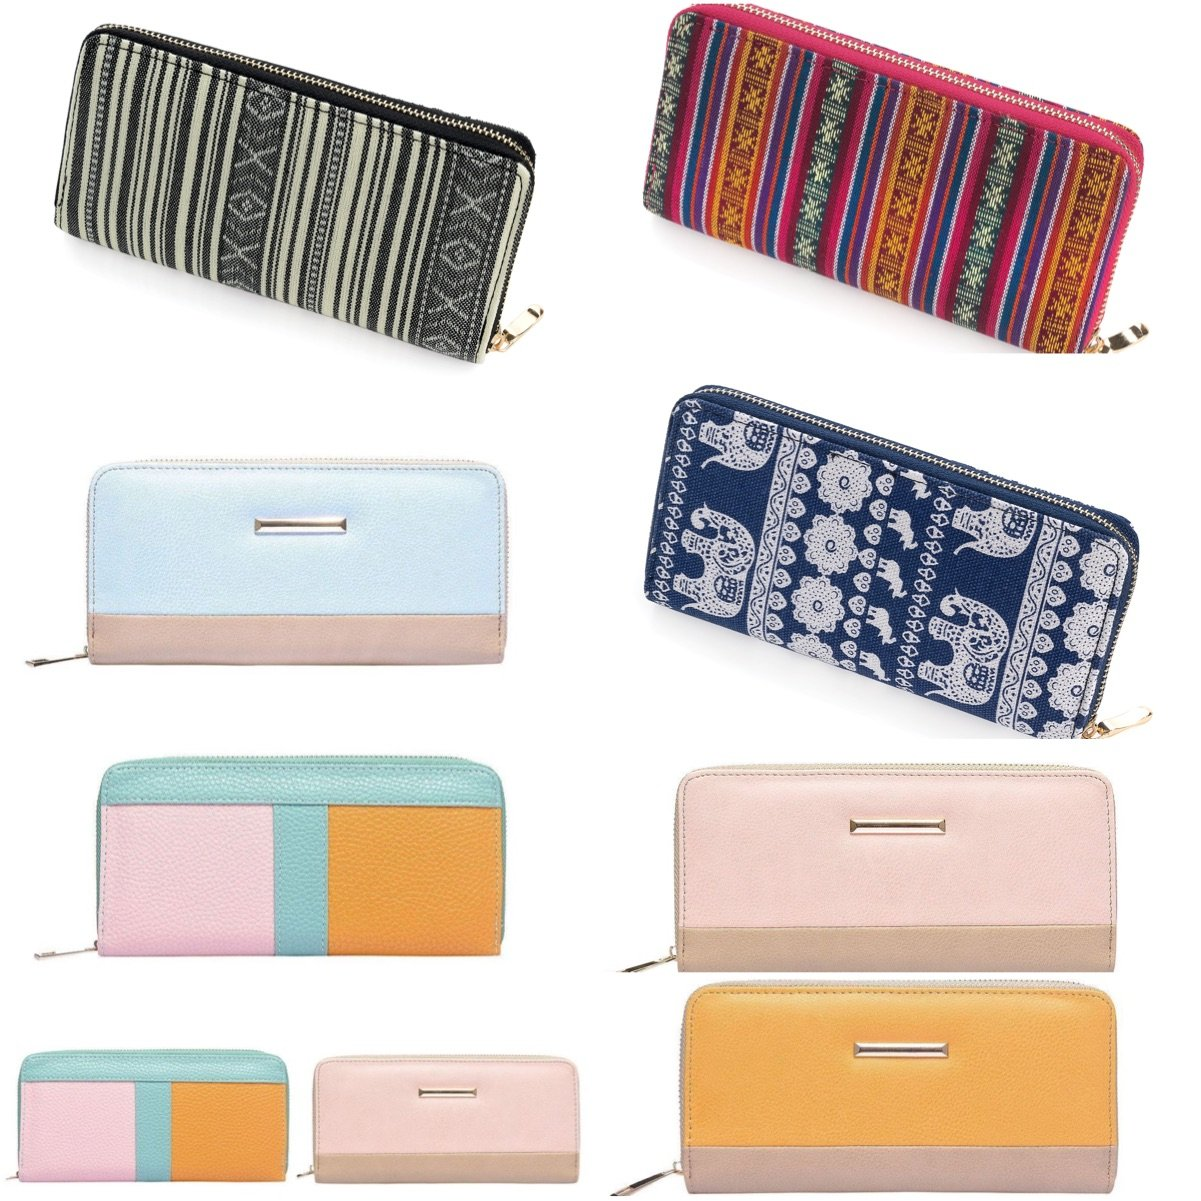 Large Purse Wallet Clutch Bag Card Holder Colour Block Tribal Print Zip Opening